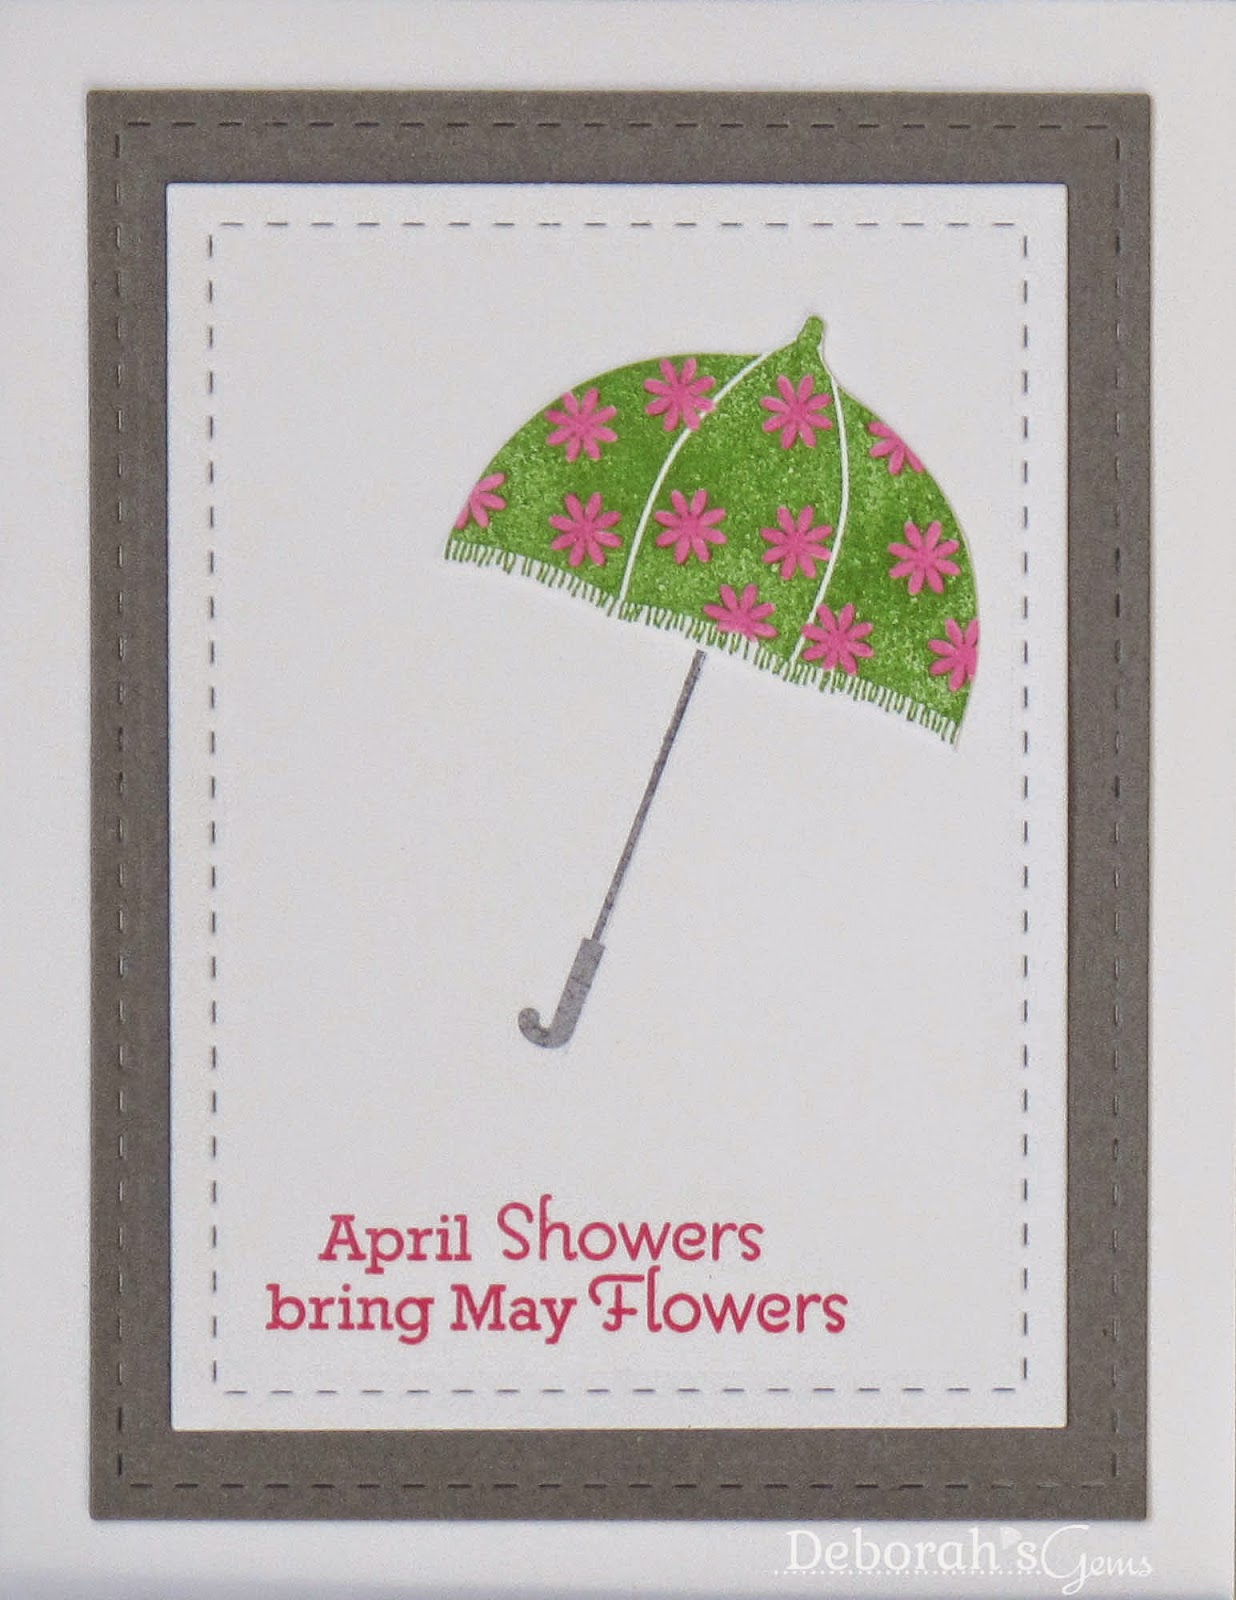 April Showers - photo by Deborah Frings - Deborah's Gems